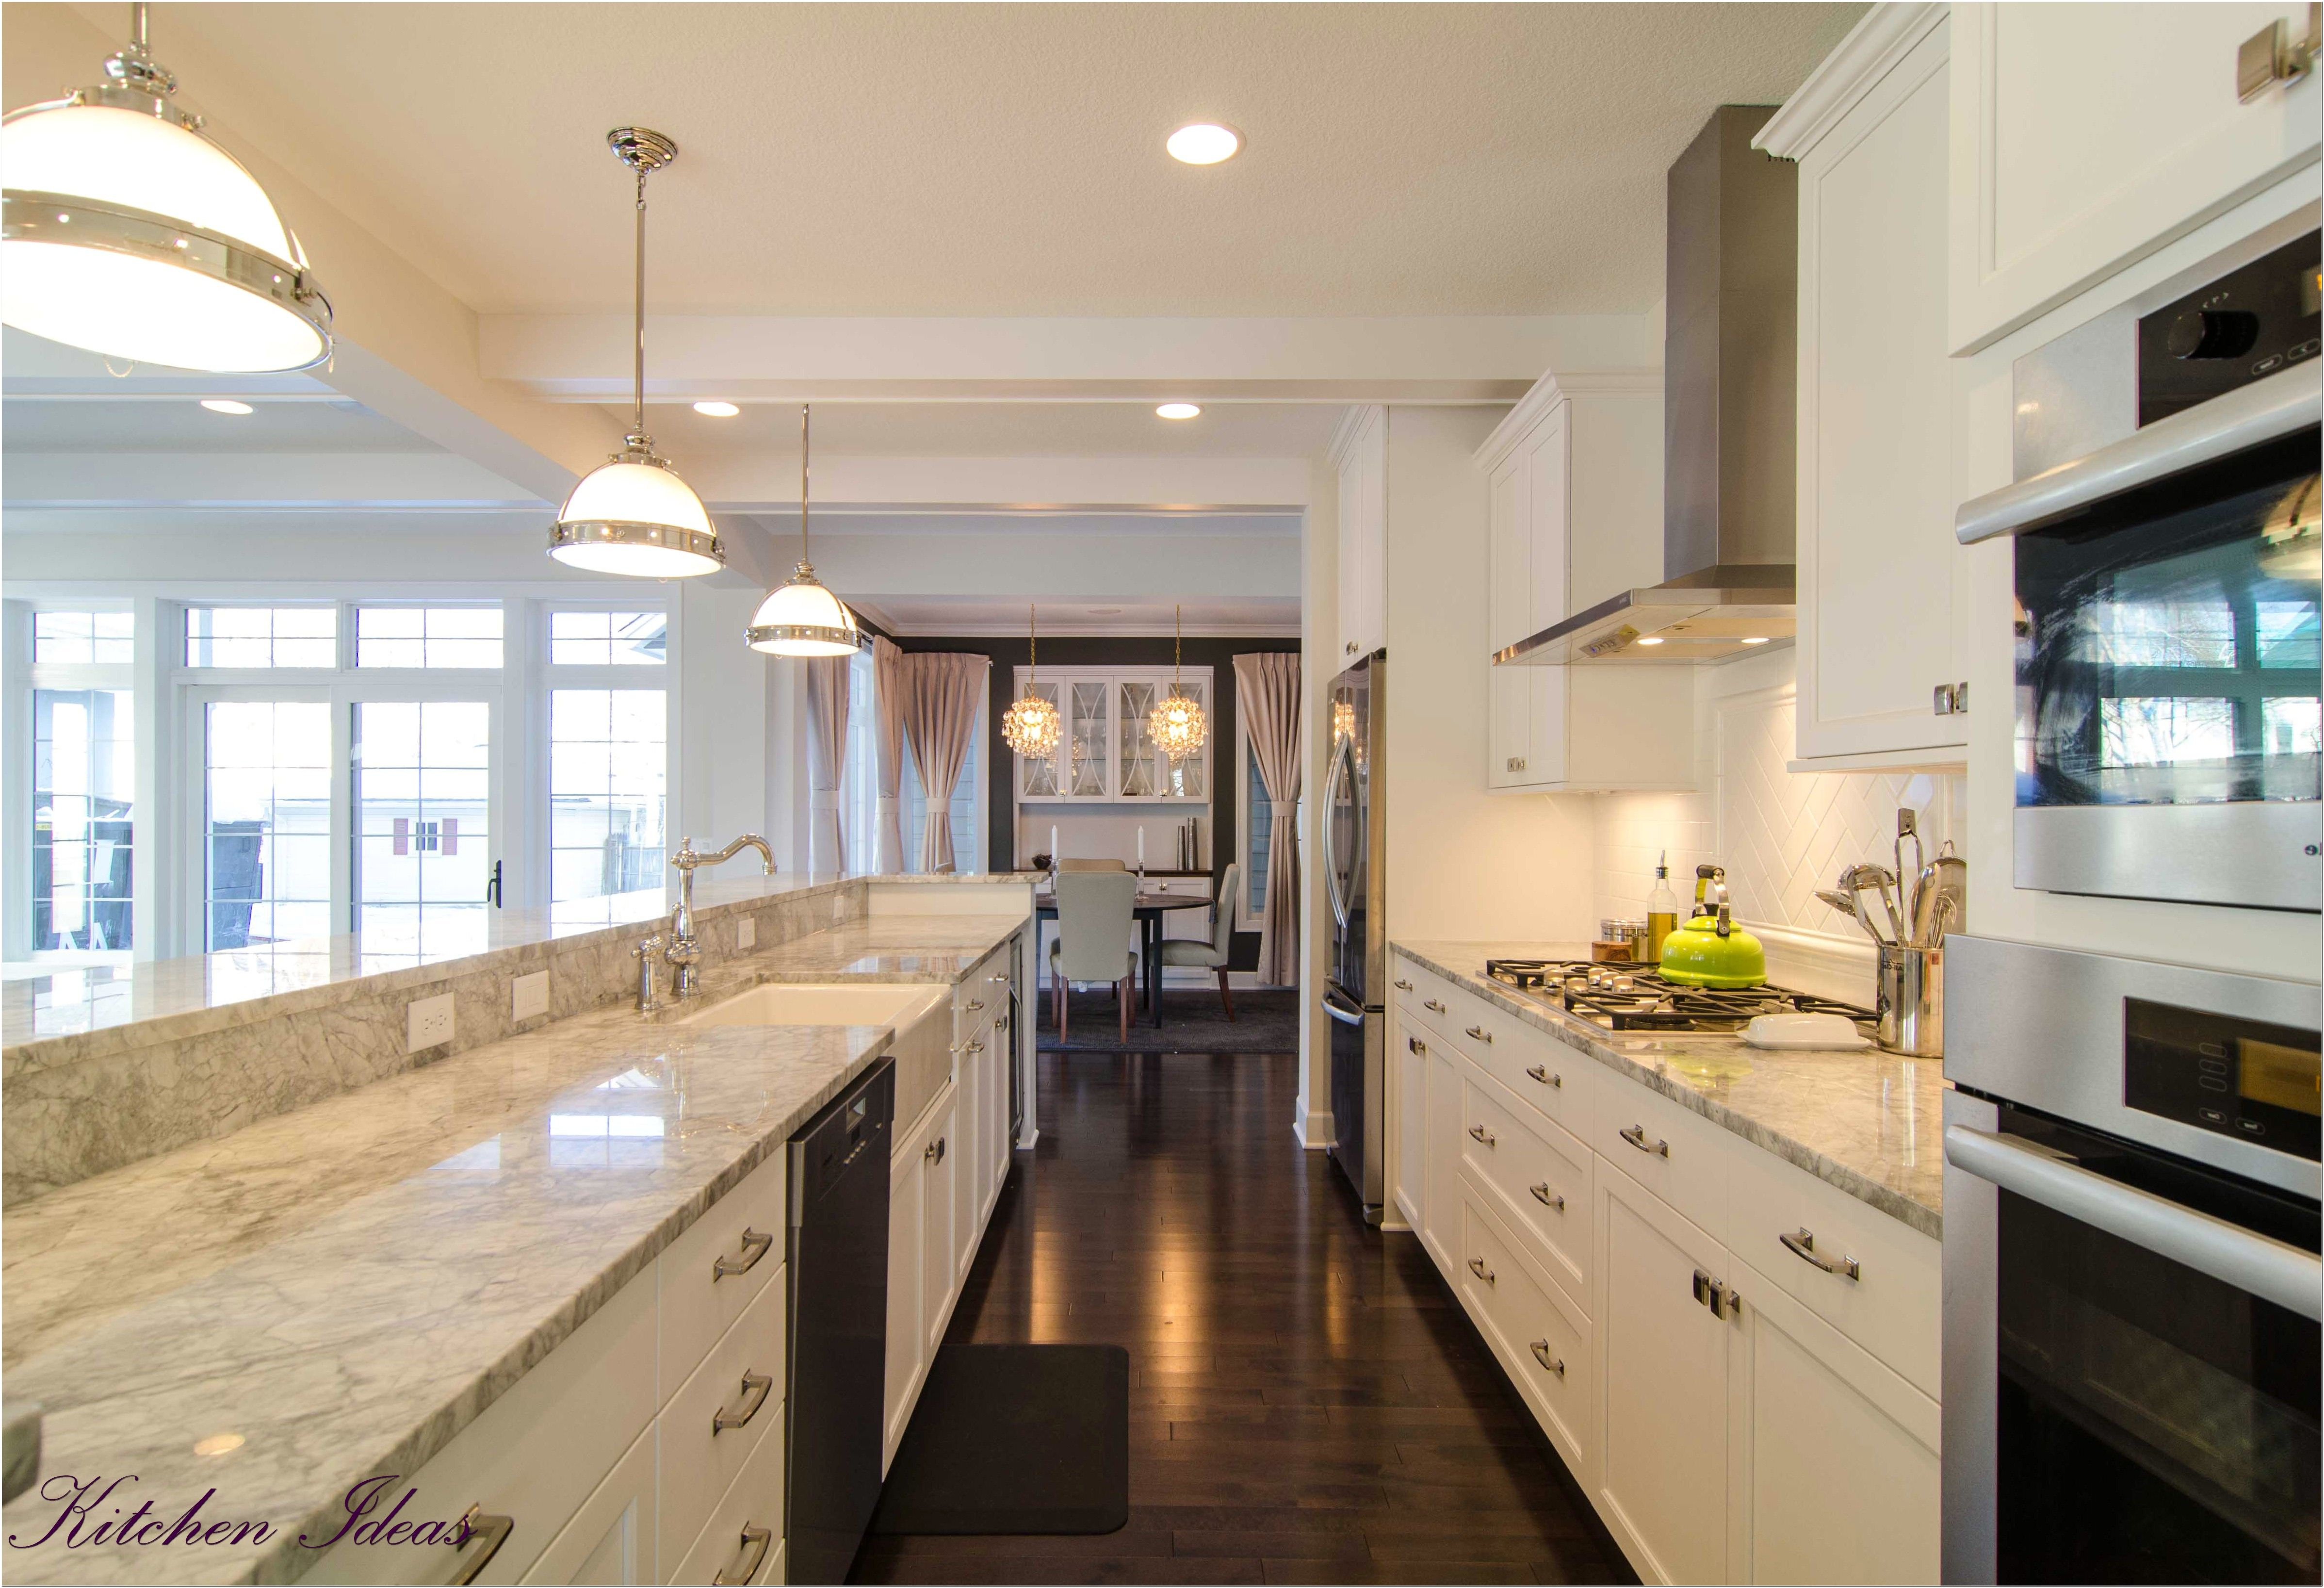 Galley kitchen ideas you can look kitchen island ideas you ...